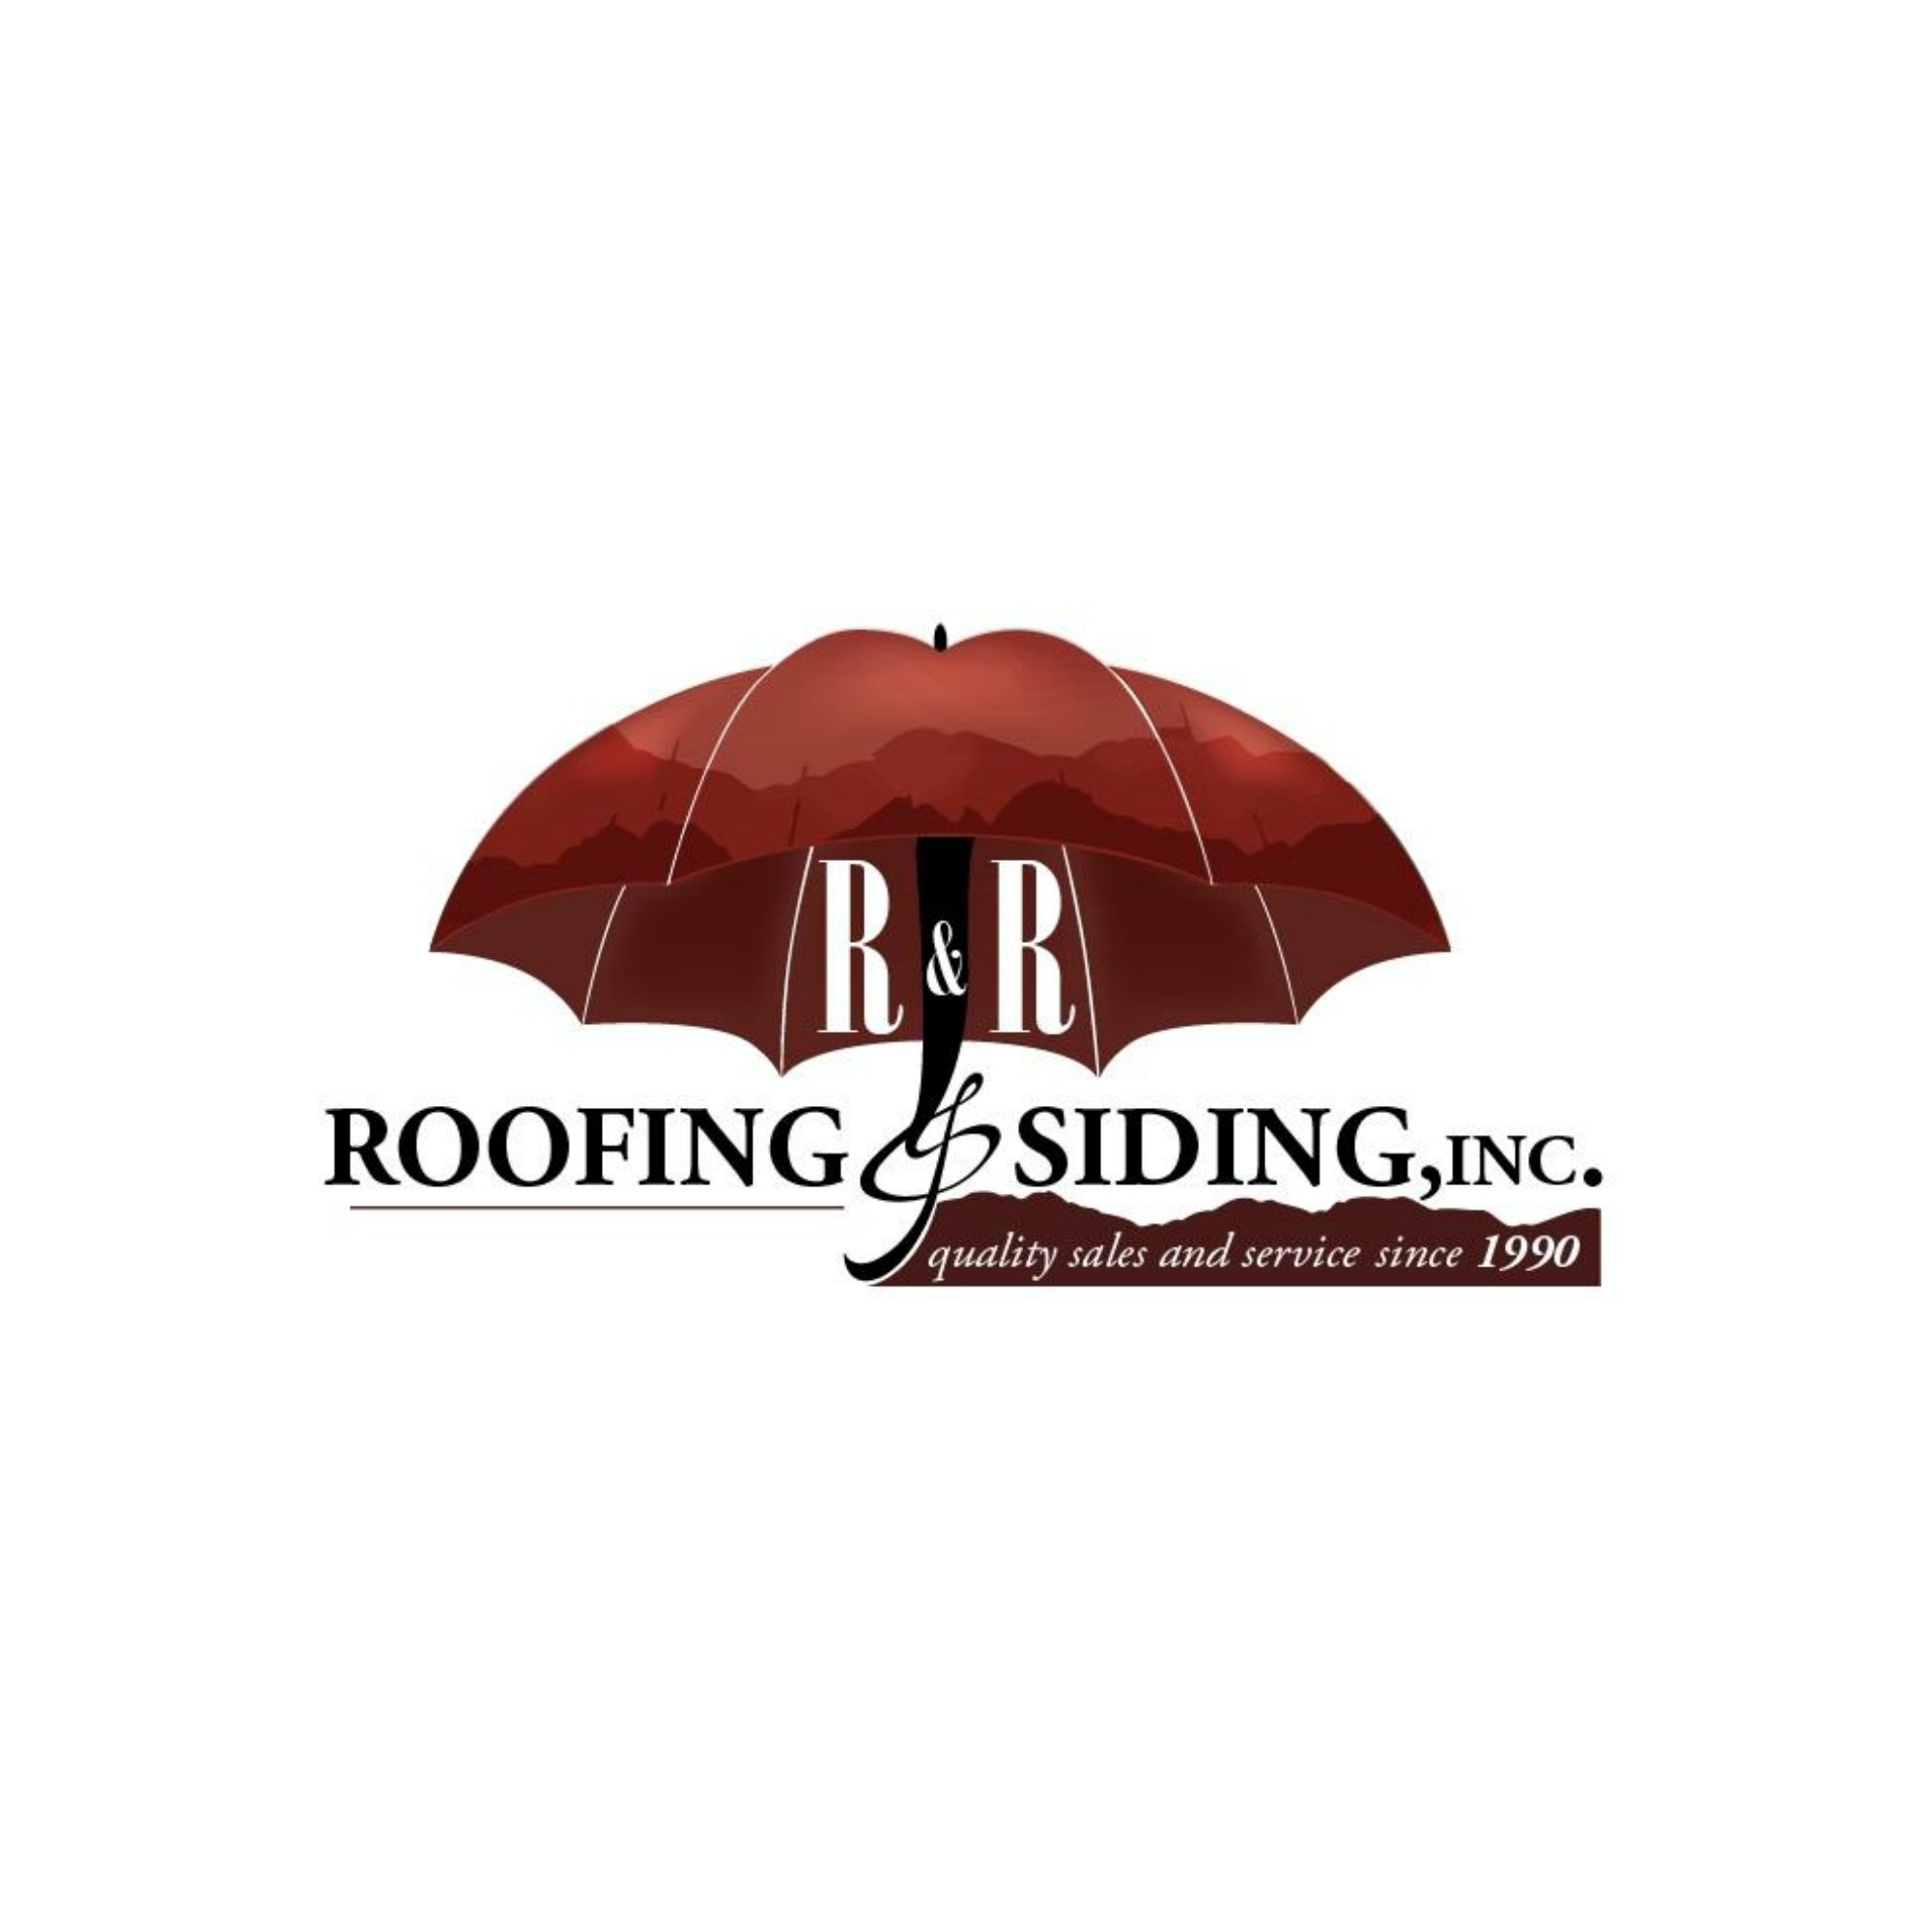 R & R Roofing & Siding